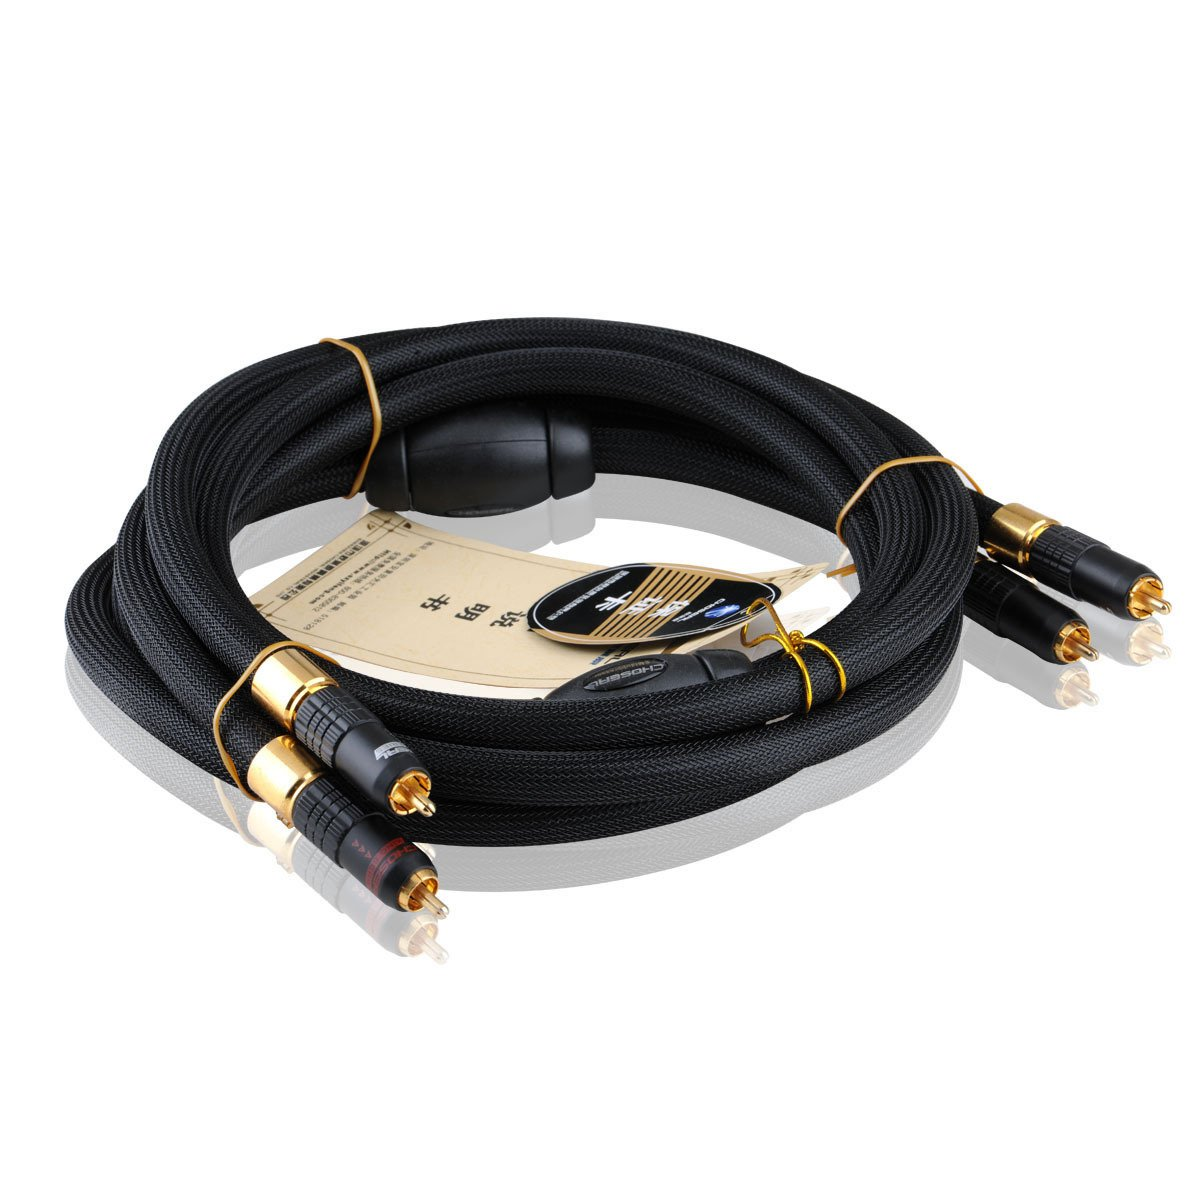 Choseal AA-5401 Hi Fi OCC 6N Single Crystal Copper AV Cable 2RCA to 2RCA Audio Cable For Amplifier Home Theater